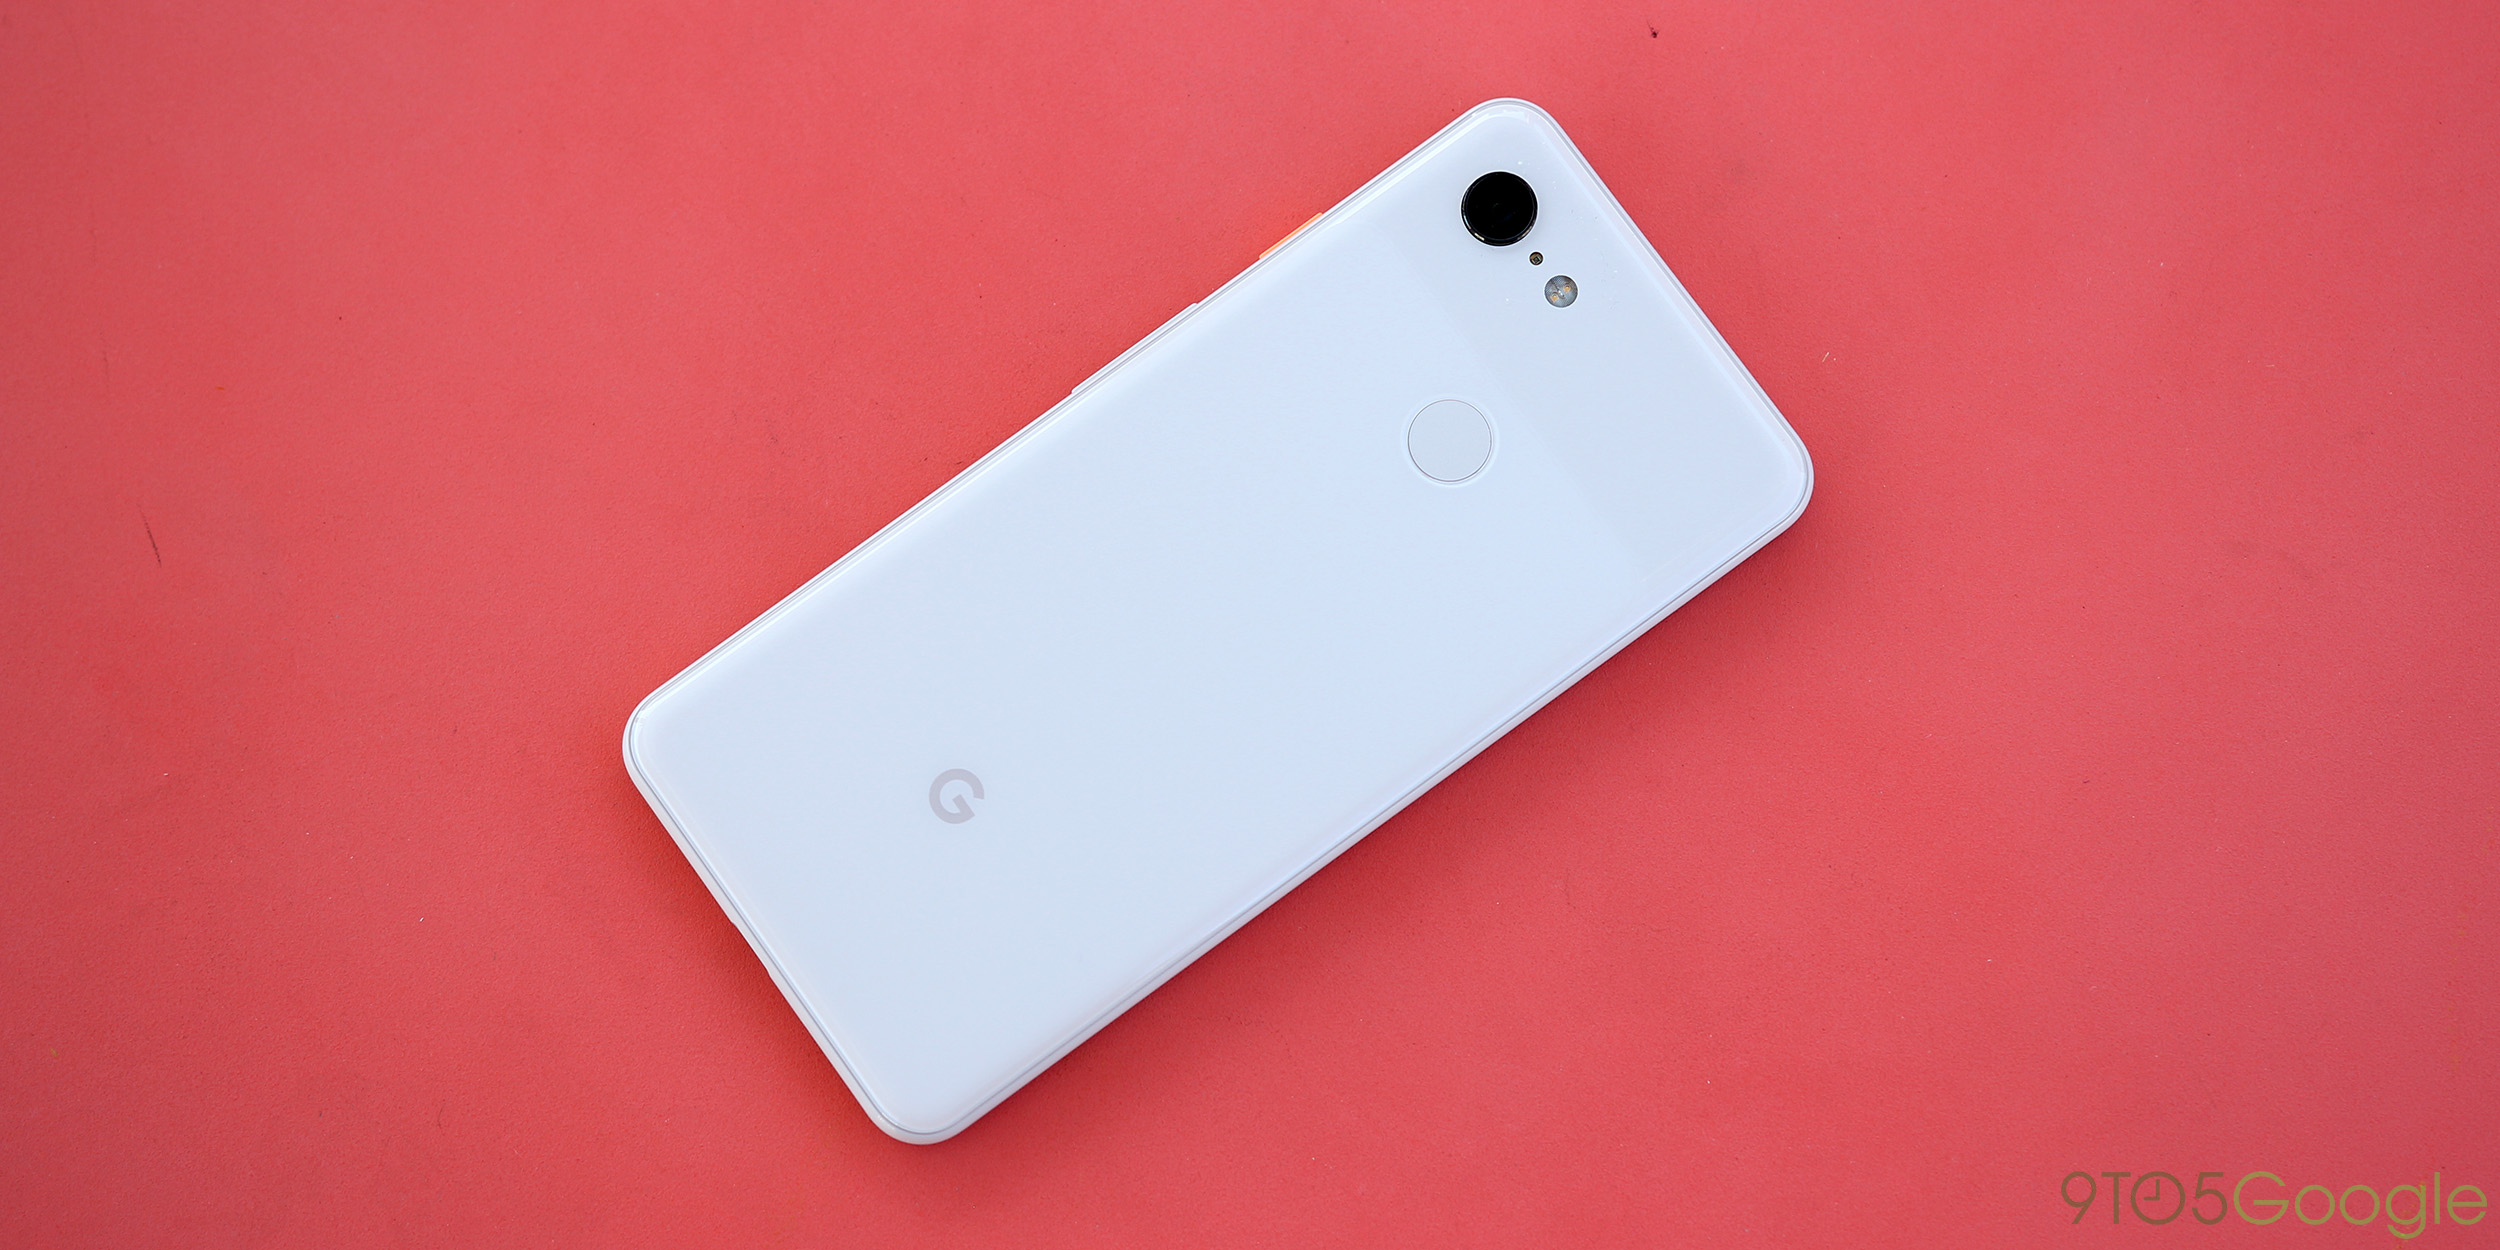 Google Pixel 3 XL is gaining Fuchsia support thanks to an indie developer